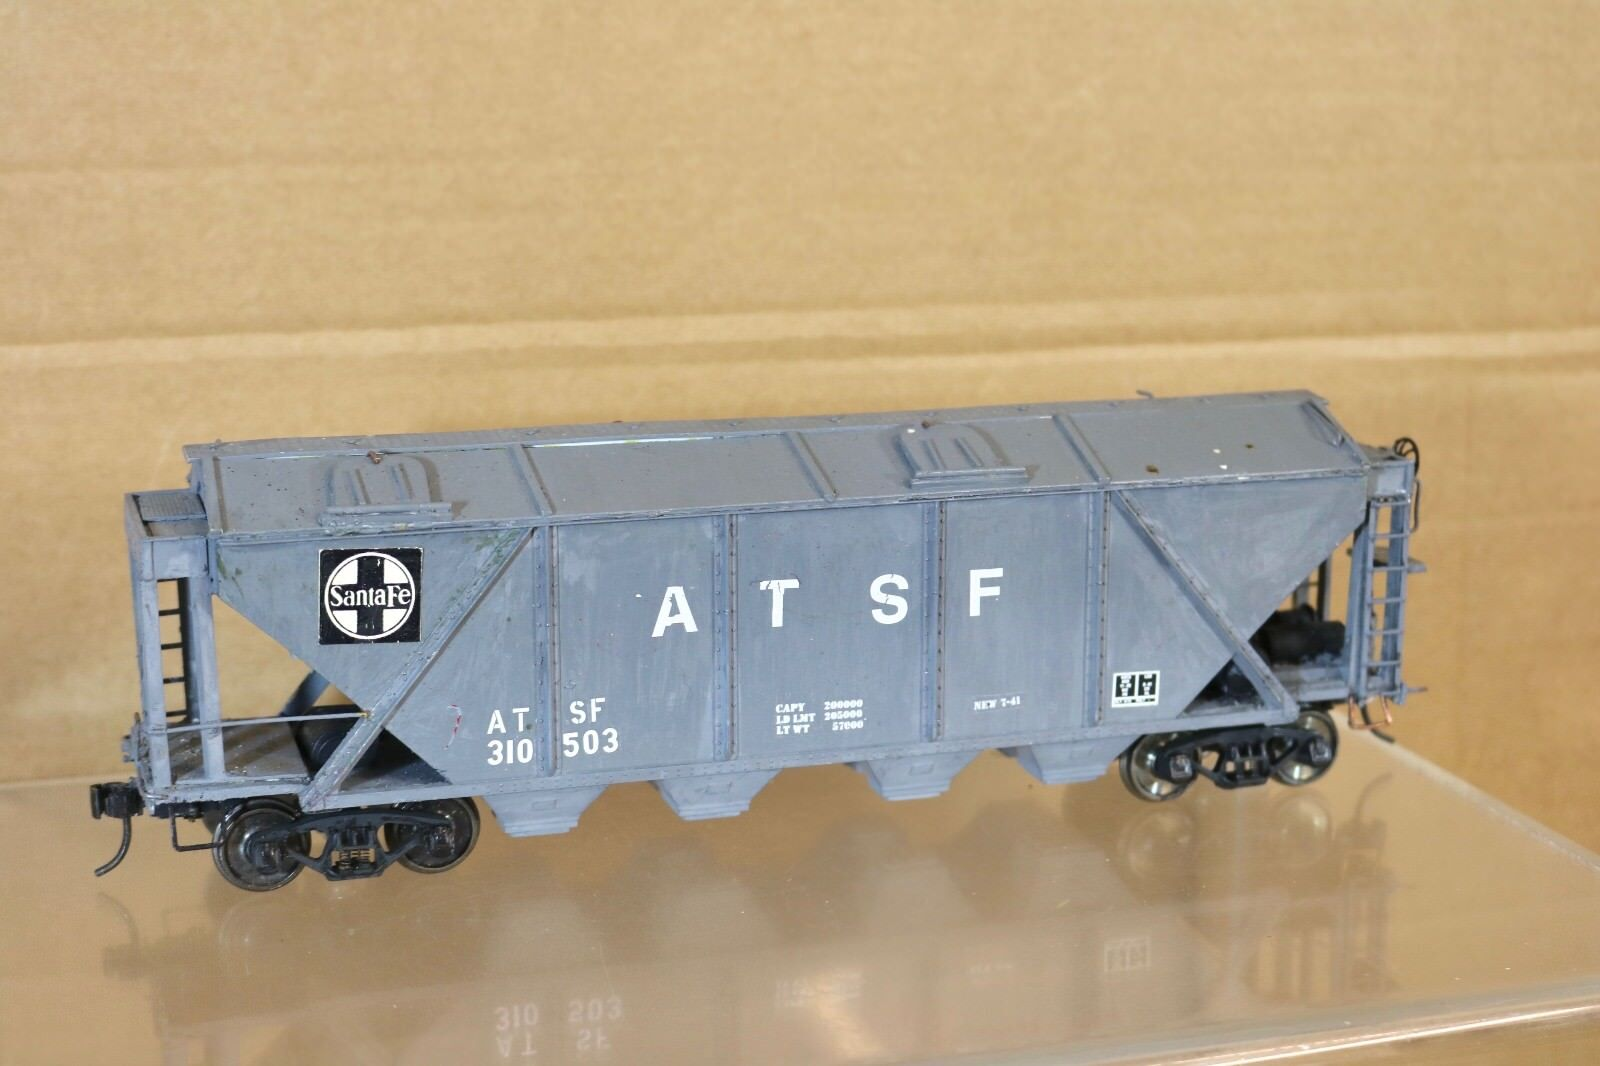 ATLAS O SCALE KIT BUILT SANTA FE AT&SF 4 BAY COVERED HOPPER CAR WAGON 310503 nn